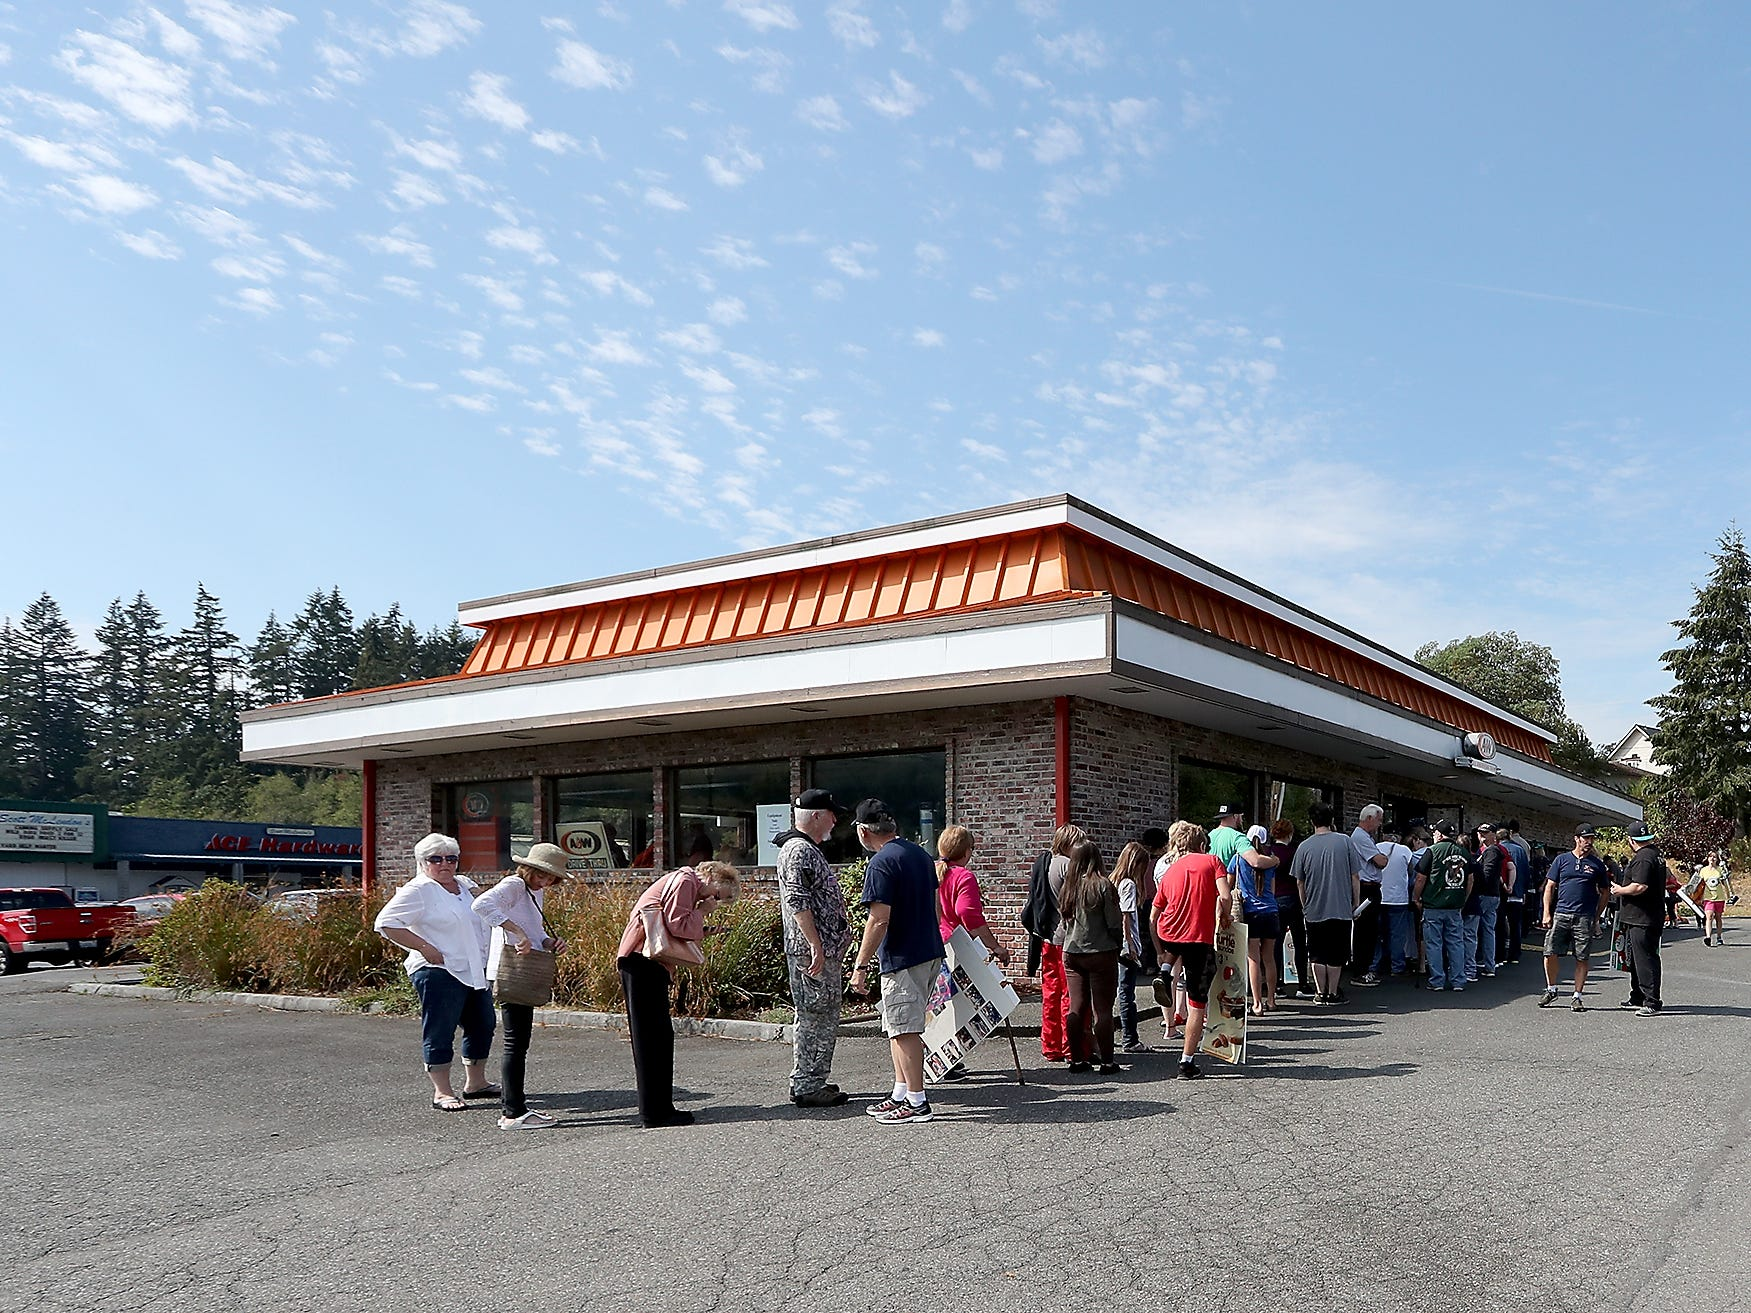 The line wraps around the building prior to the start of a sports memorabilia giveaway and restaurant equipment sale at the A&W in Port Orchard on Wednesday, August 29, 2018.